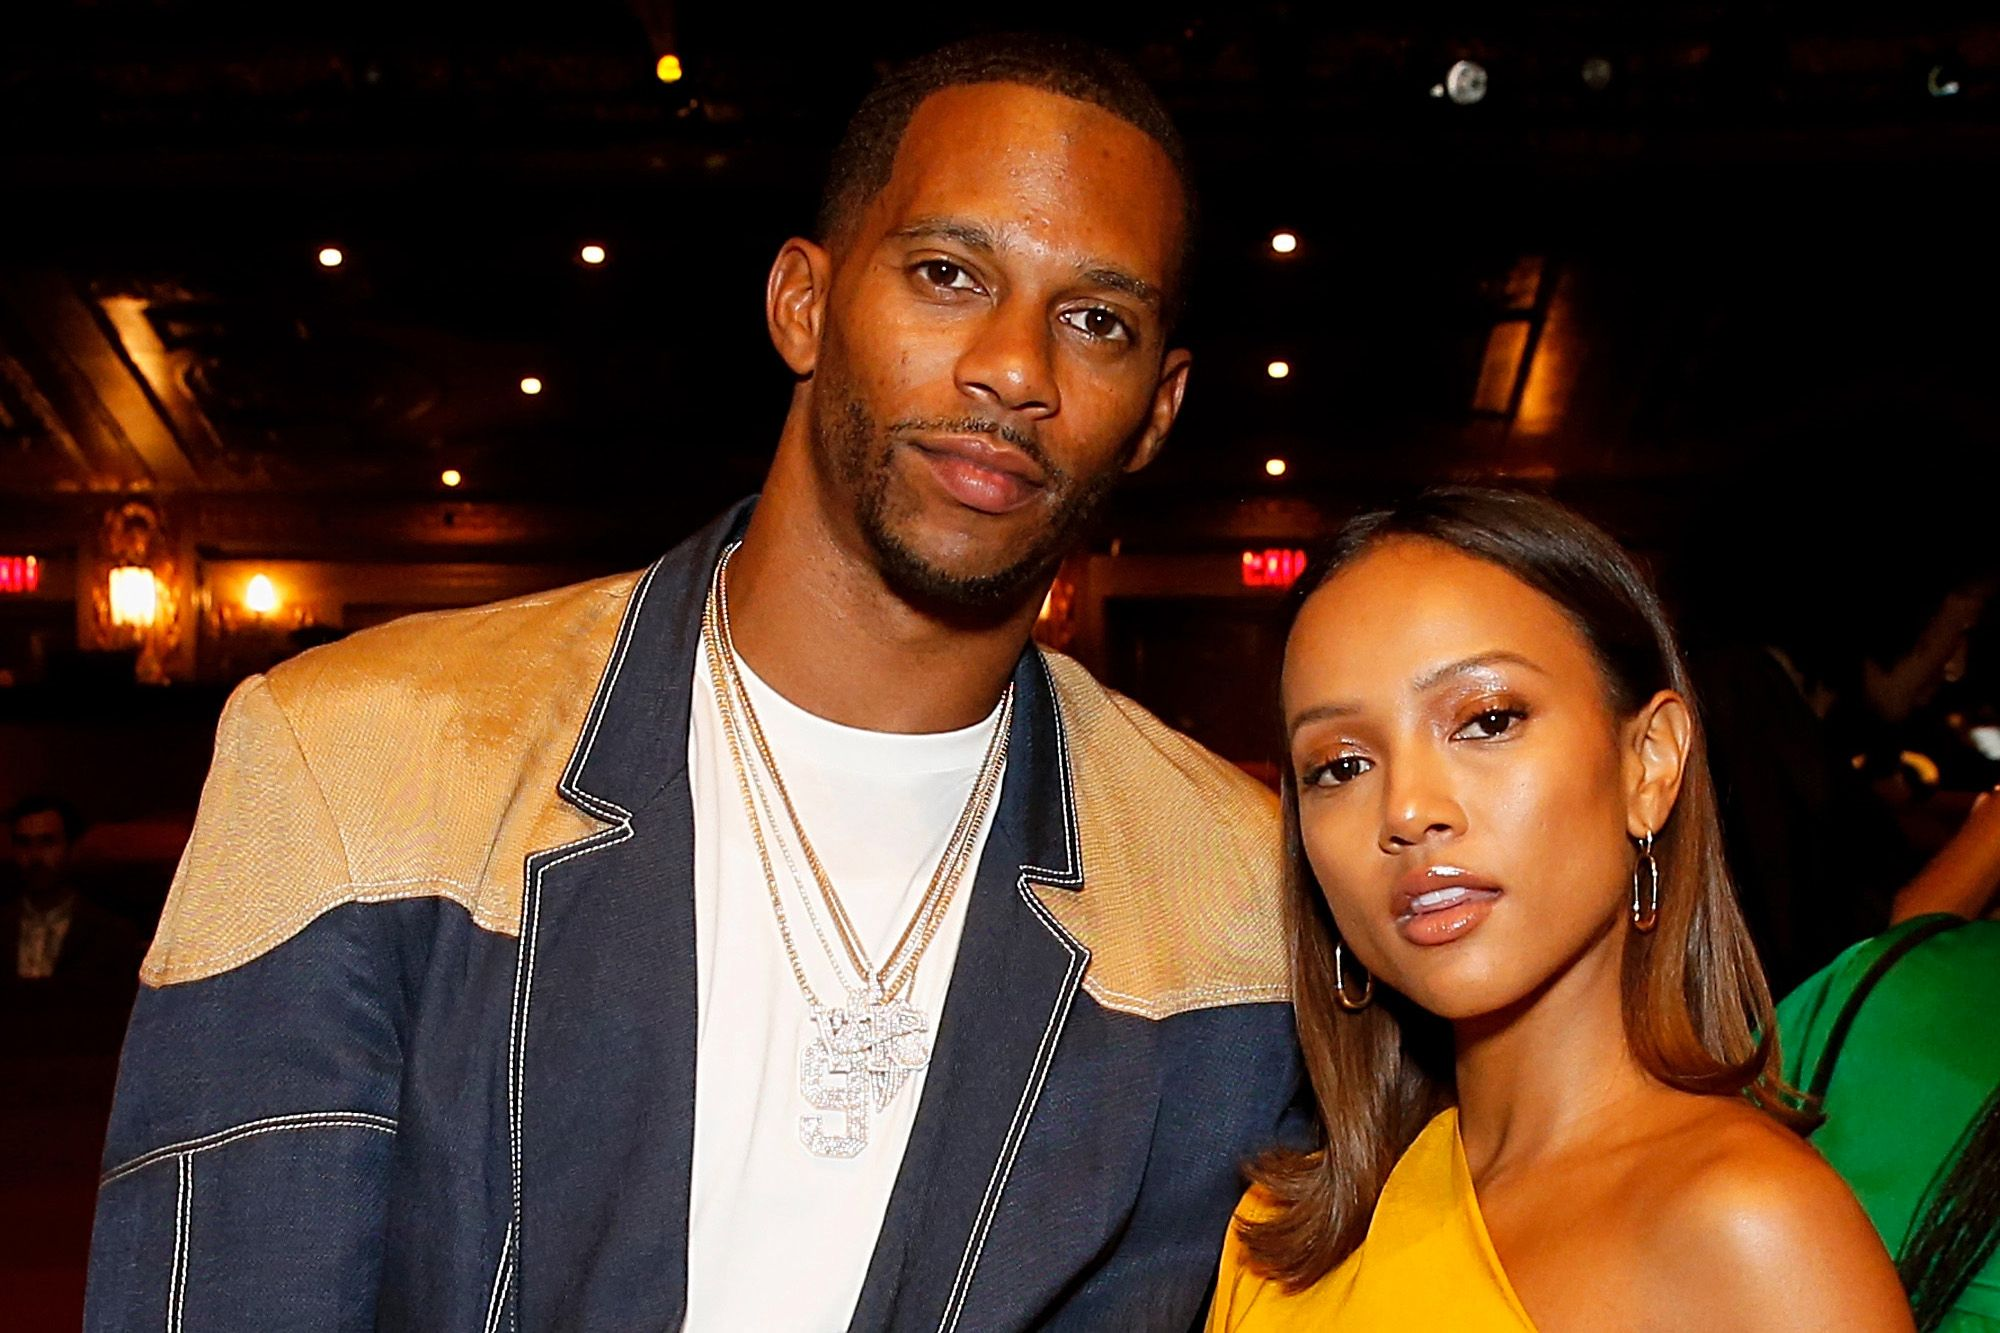 karrueche-tran-and-victor-cruz-reportedly-no-longer-an-item-heres-why-they-broke-up-after-3-years